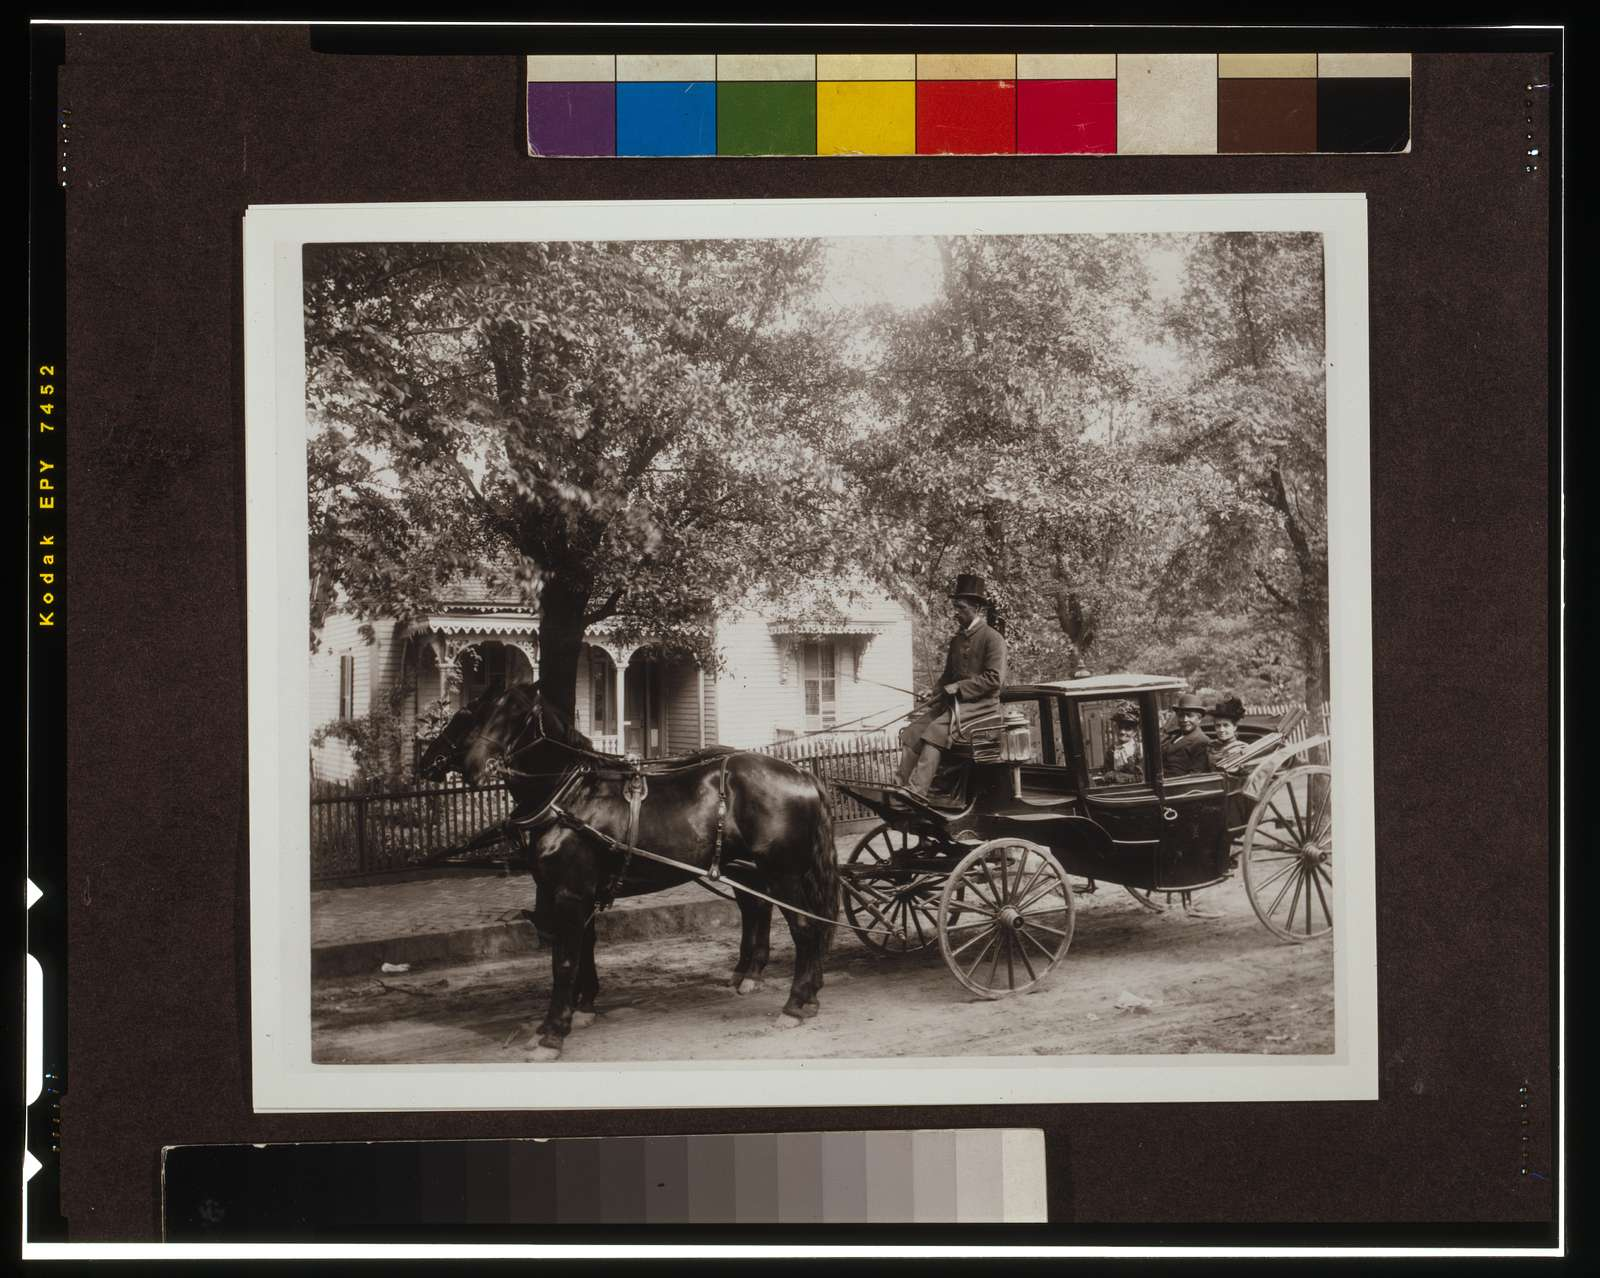 [David Tobias Howard, an undertaker, his mother, and wife, Atlanta, Georgia; seated in a horse-drawn carriage with tree-shaded house in background]